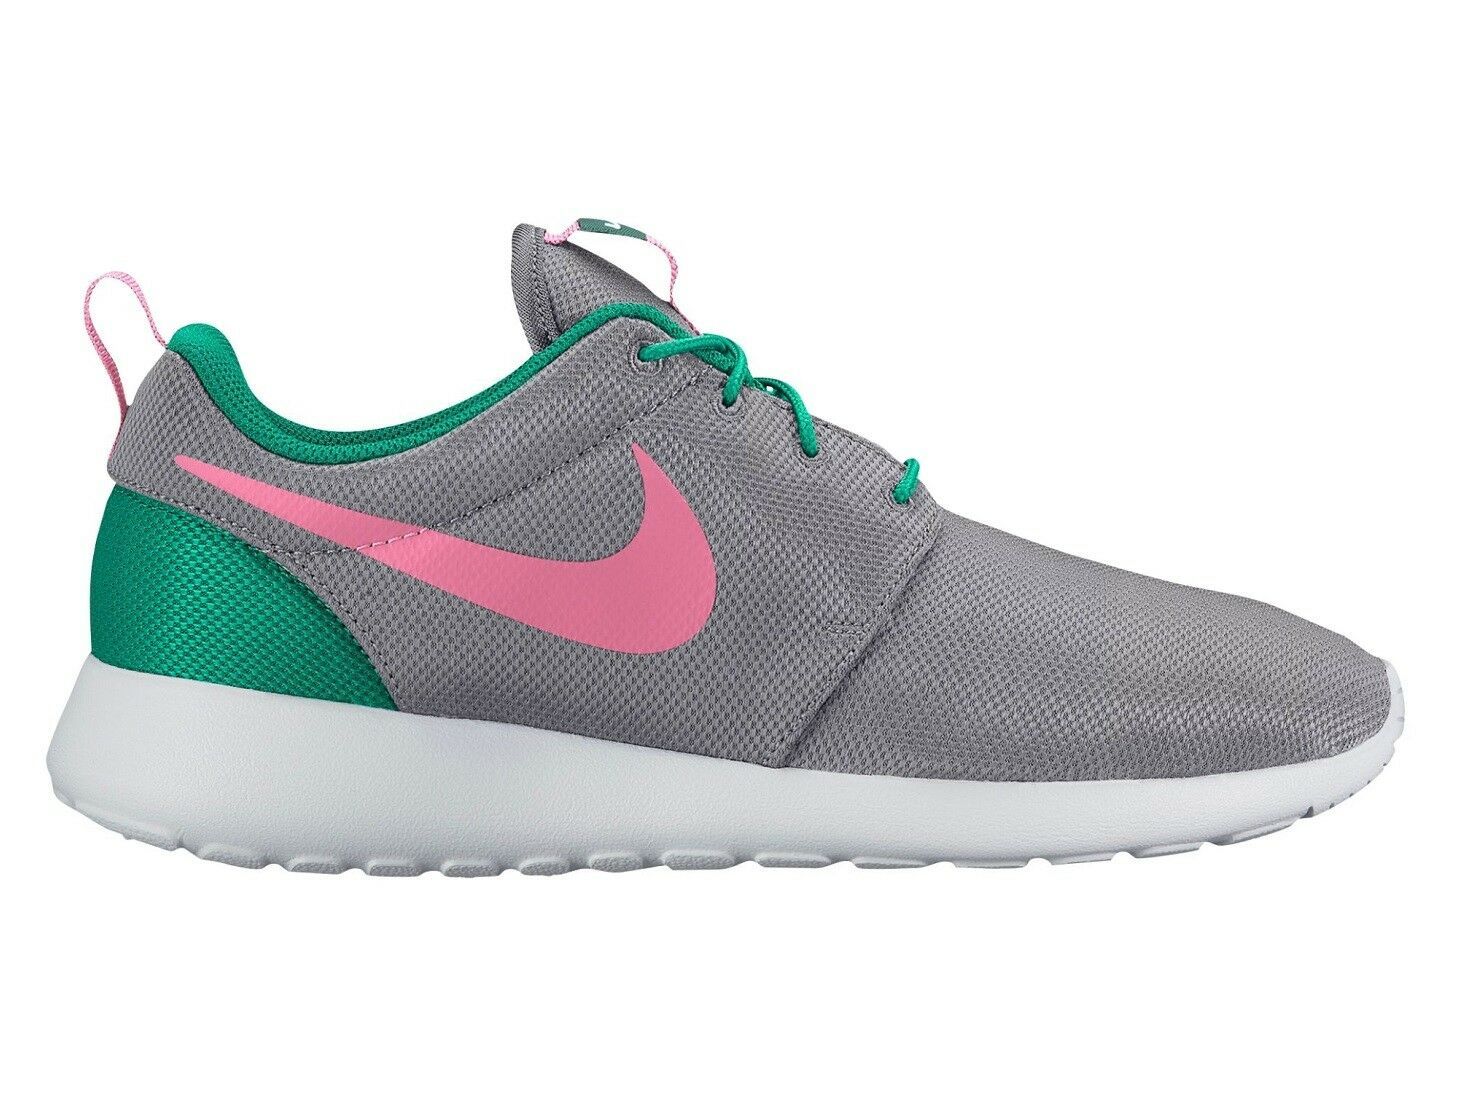 Nike Roshe One Watermelon Mens 511881-036 511881-036 511881-036 Grey Green Running shoes Size 11 6d5bbc